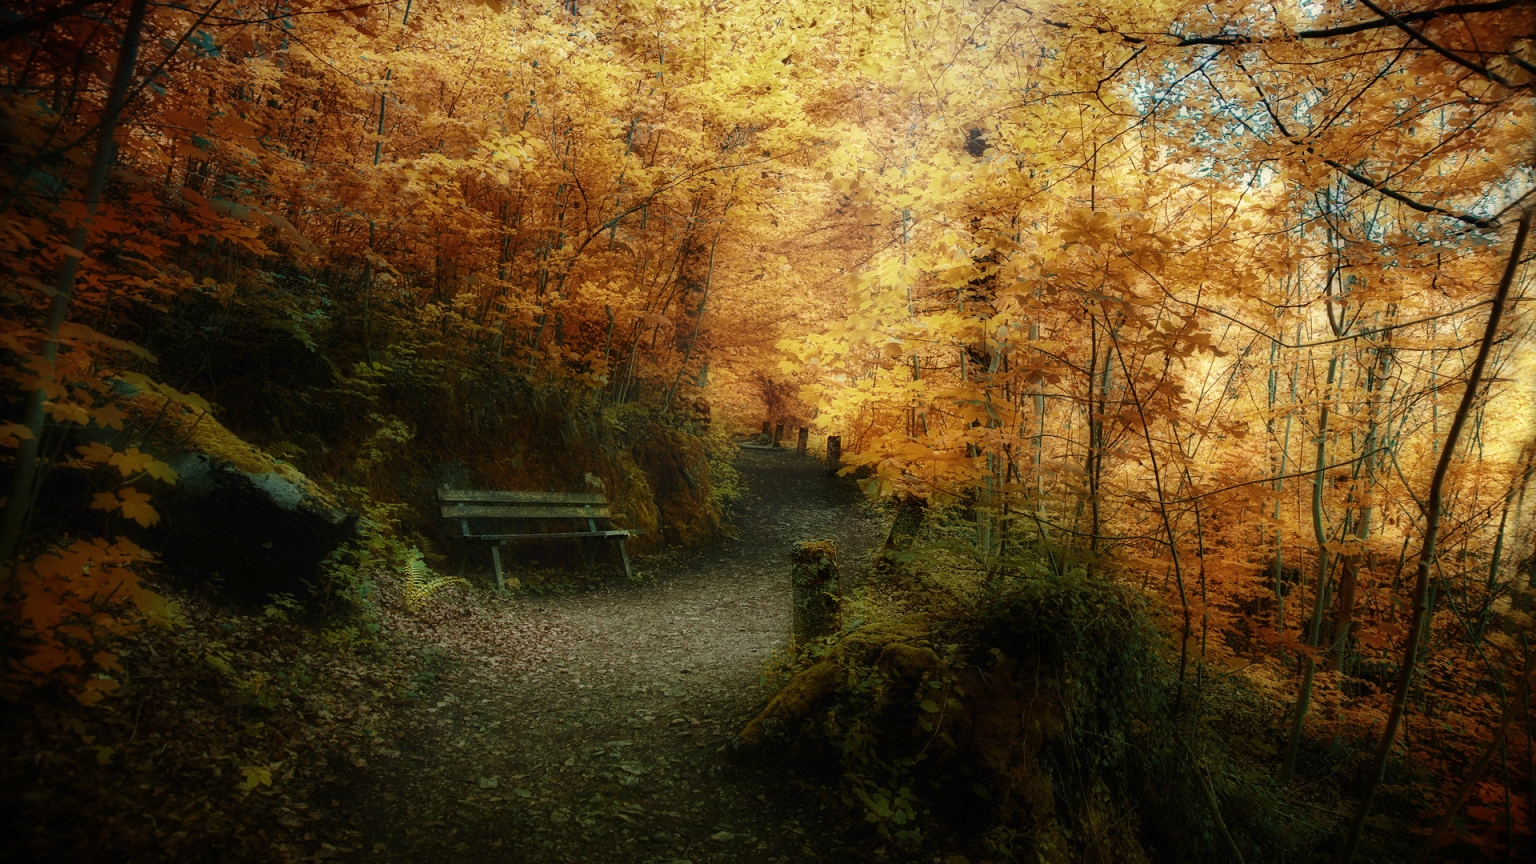 Superb Autumn forest landscape for 1536 x 864 HDTV resolution